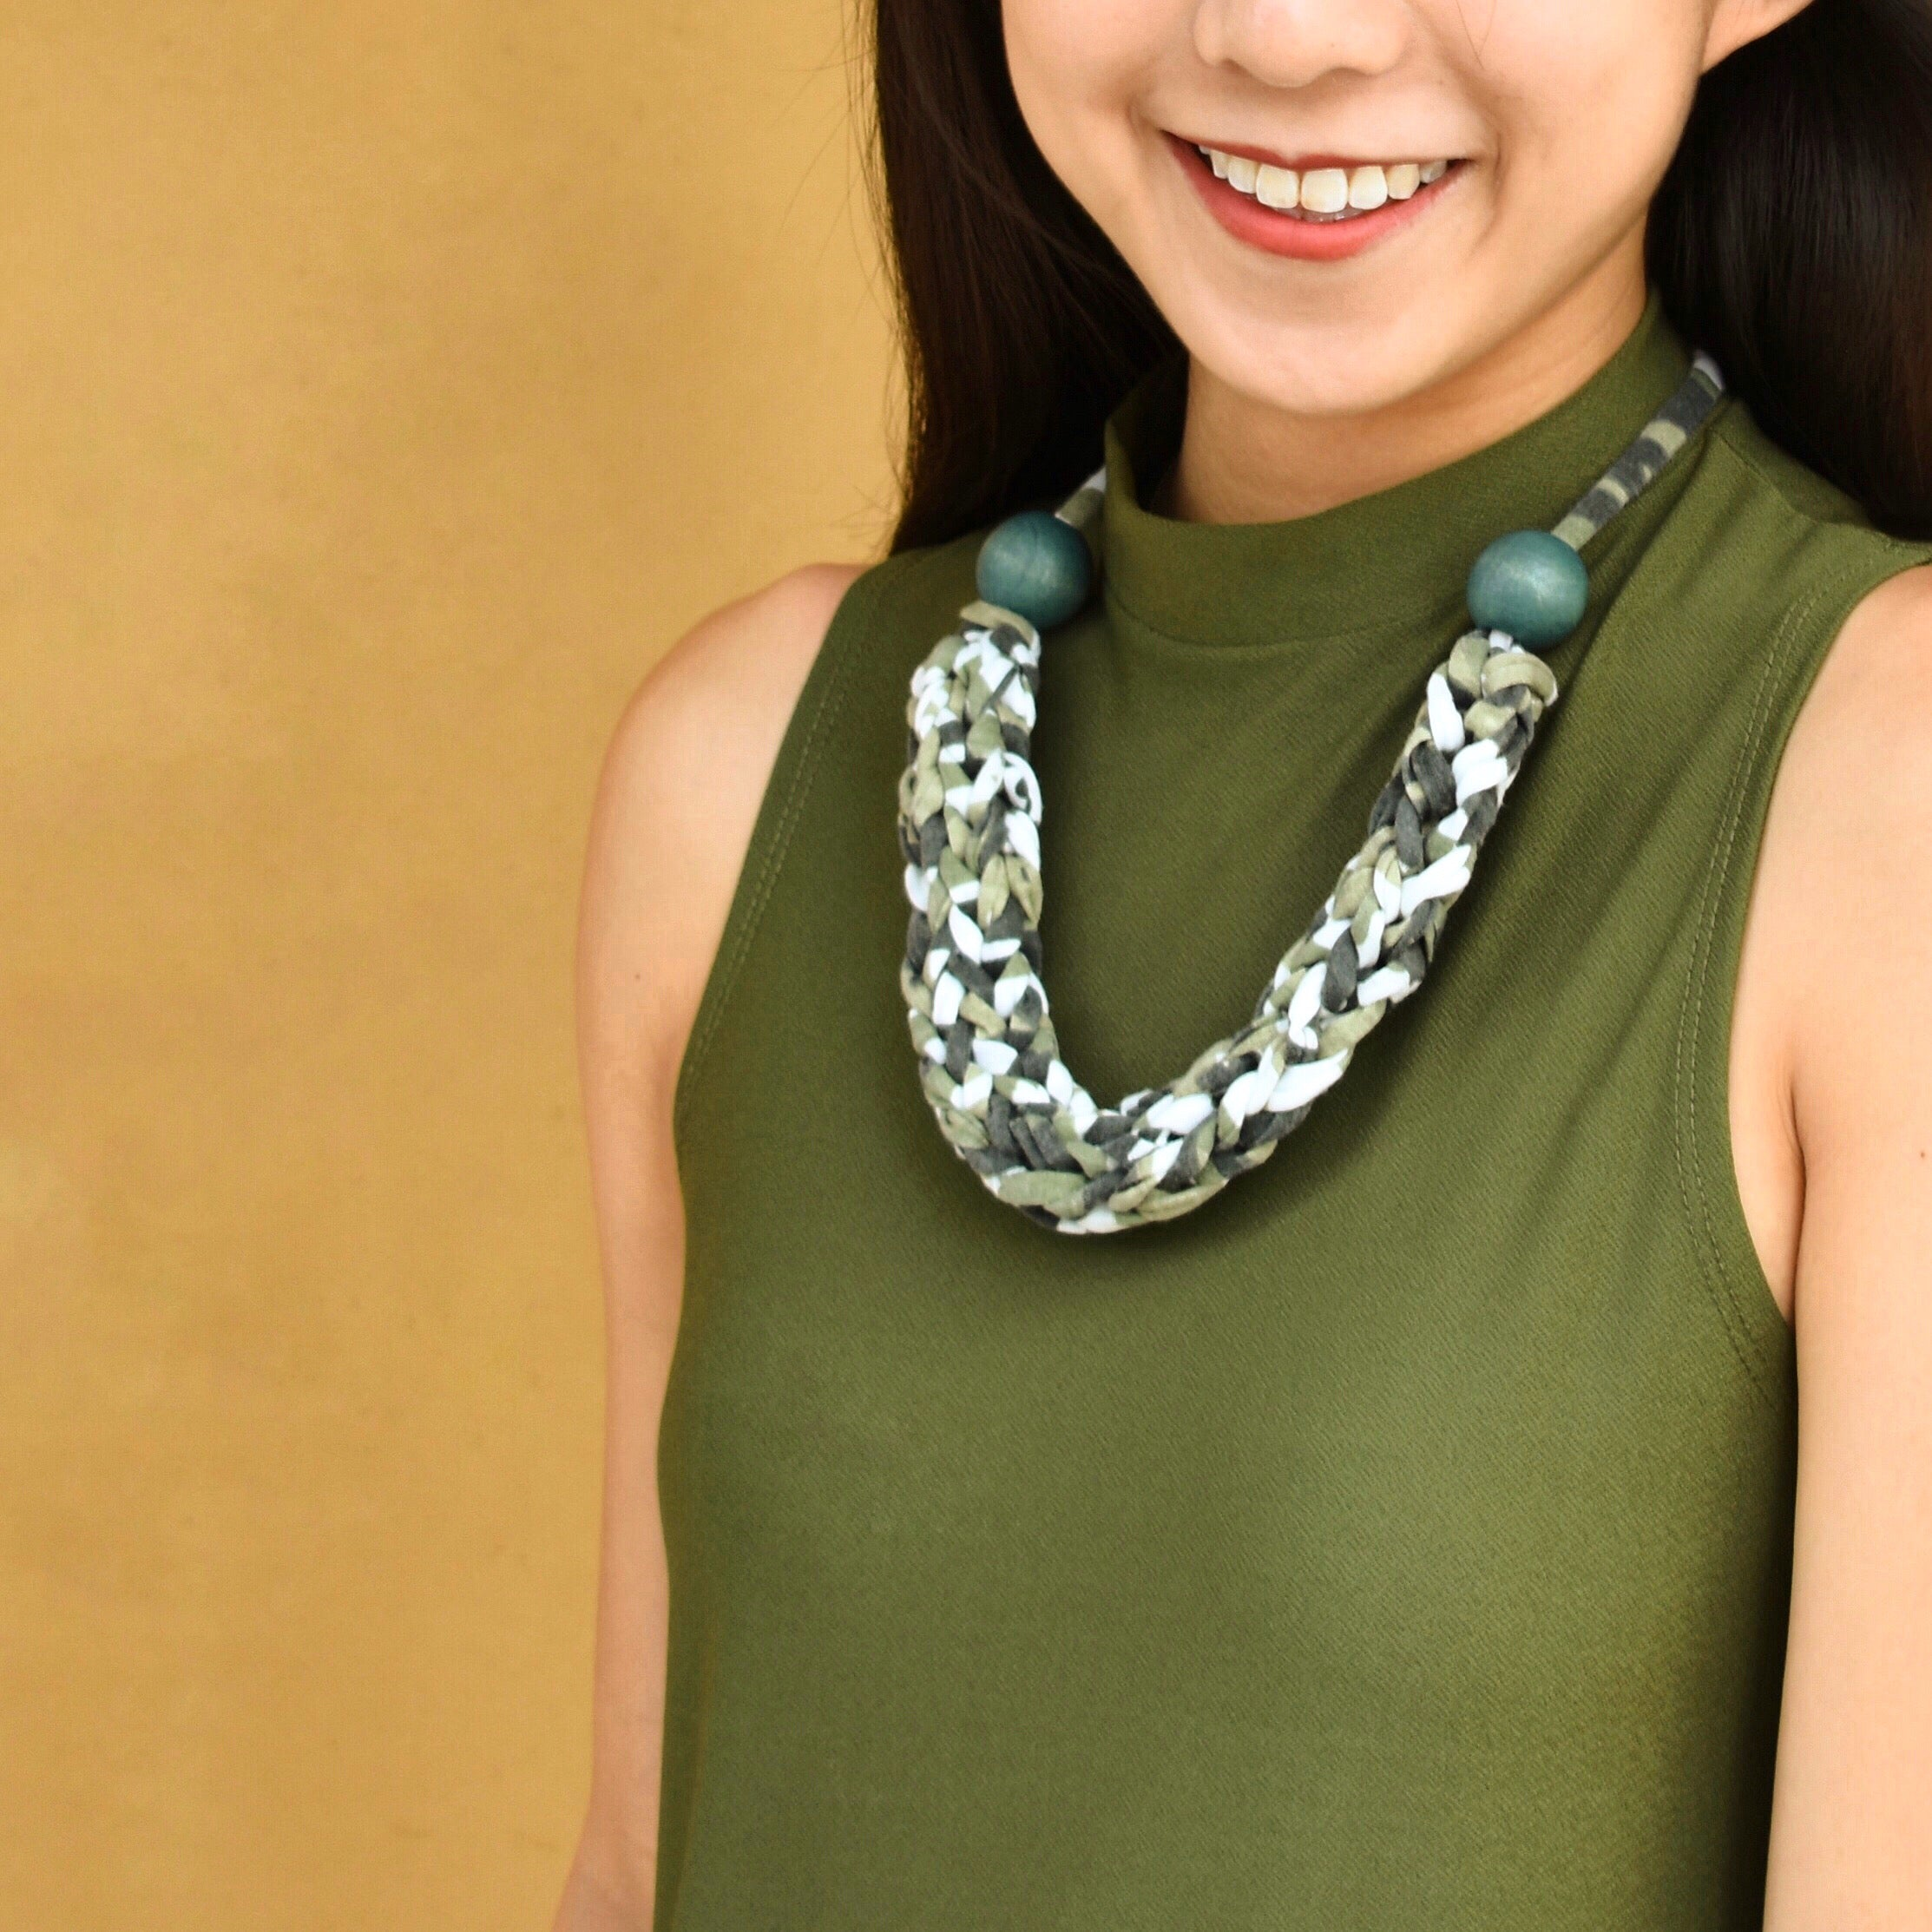 Made-To-Order: Florence Braided Handmade Yarn Necklace in Camo Green